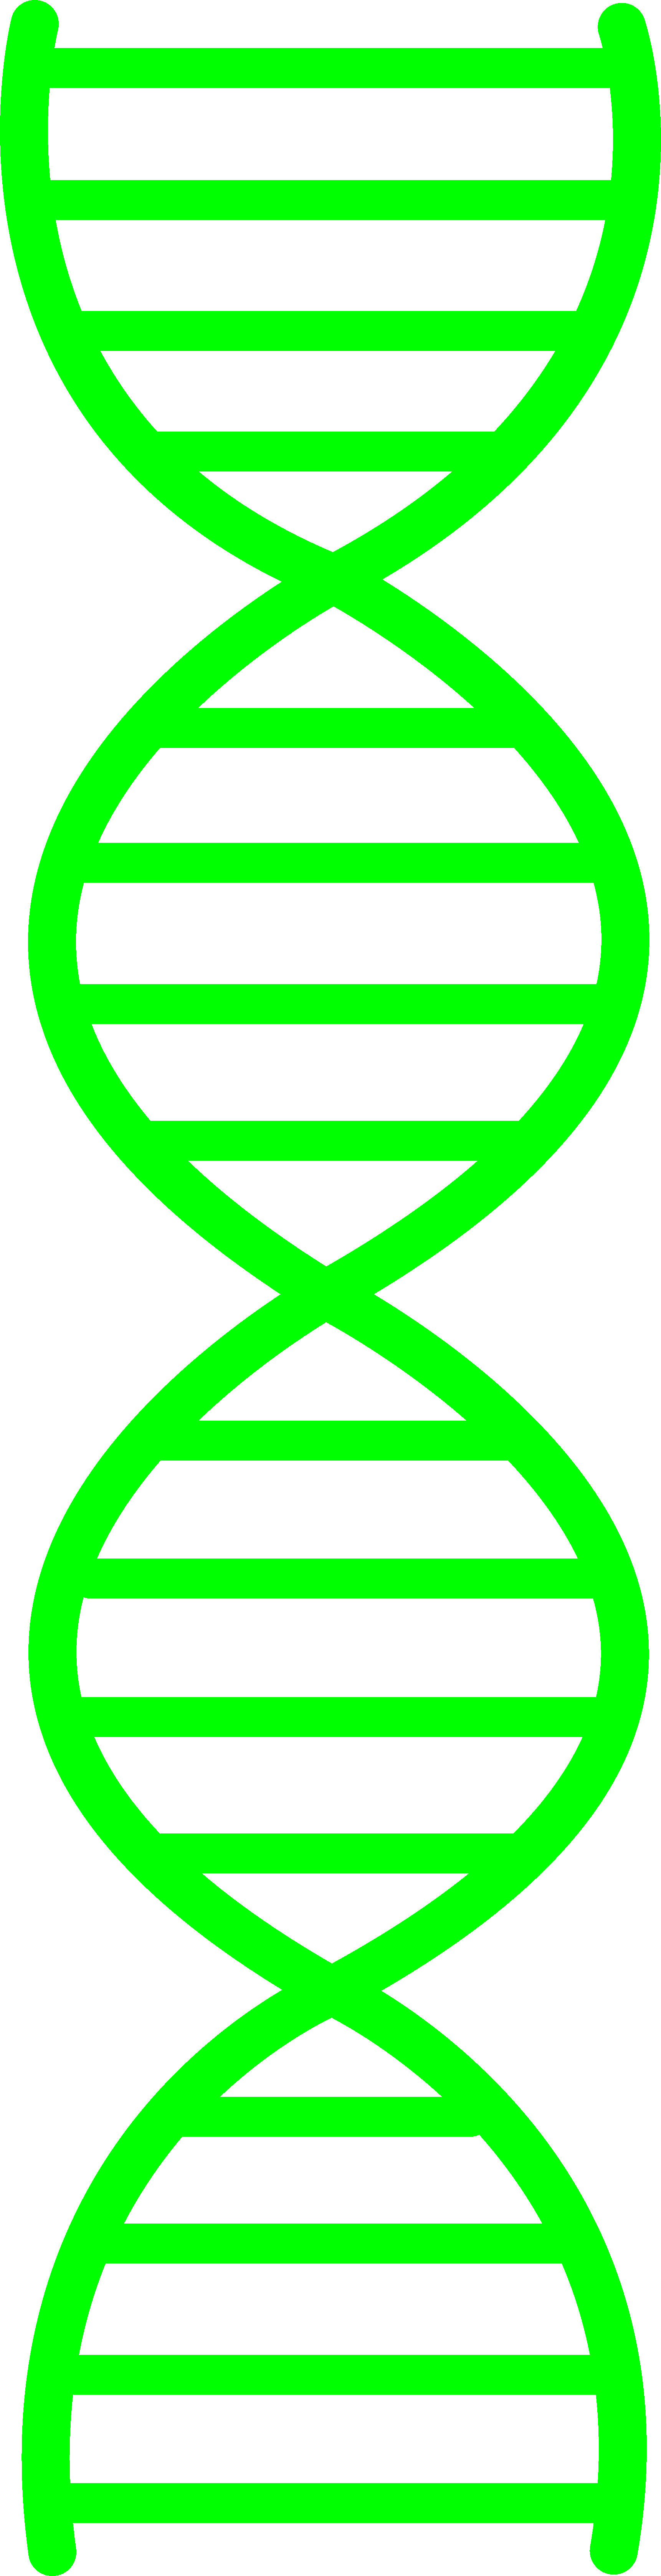 Dna clipart stylized. Cliparts co green design